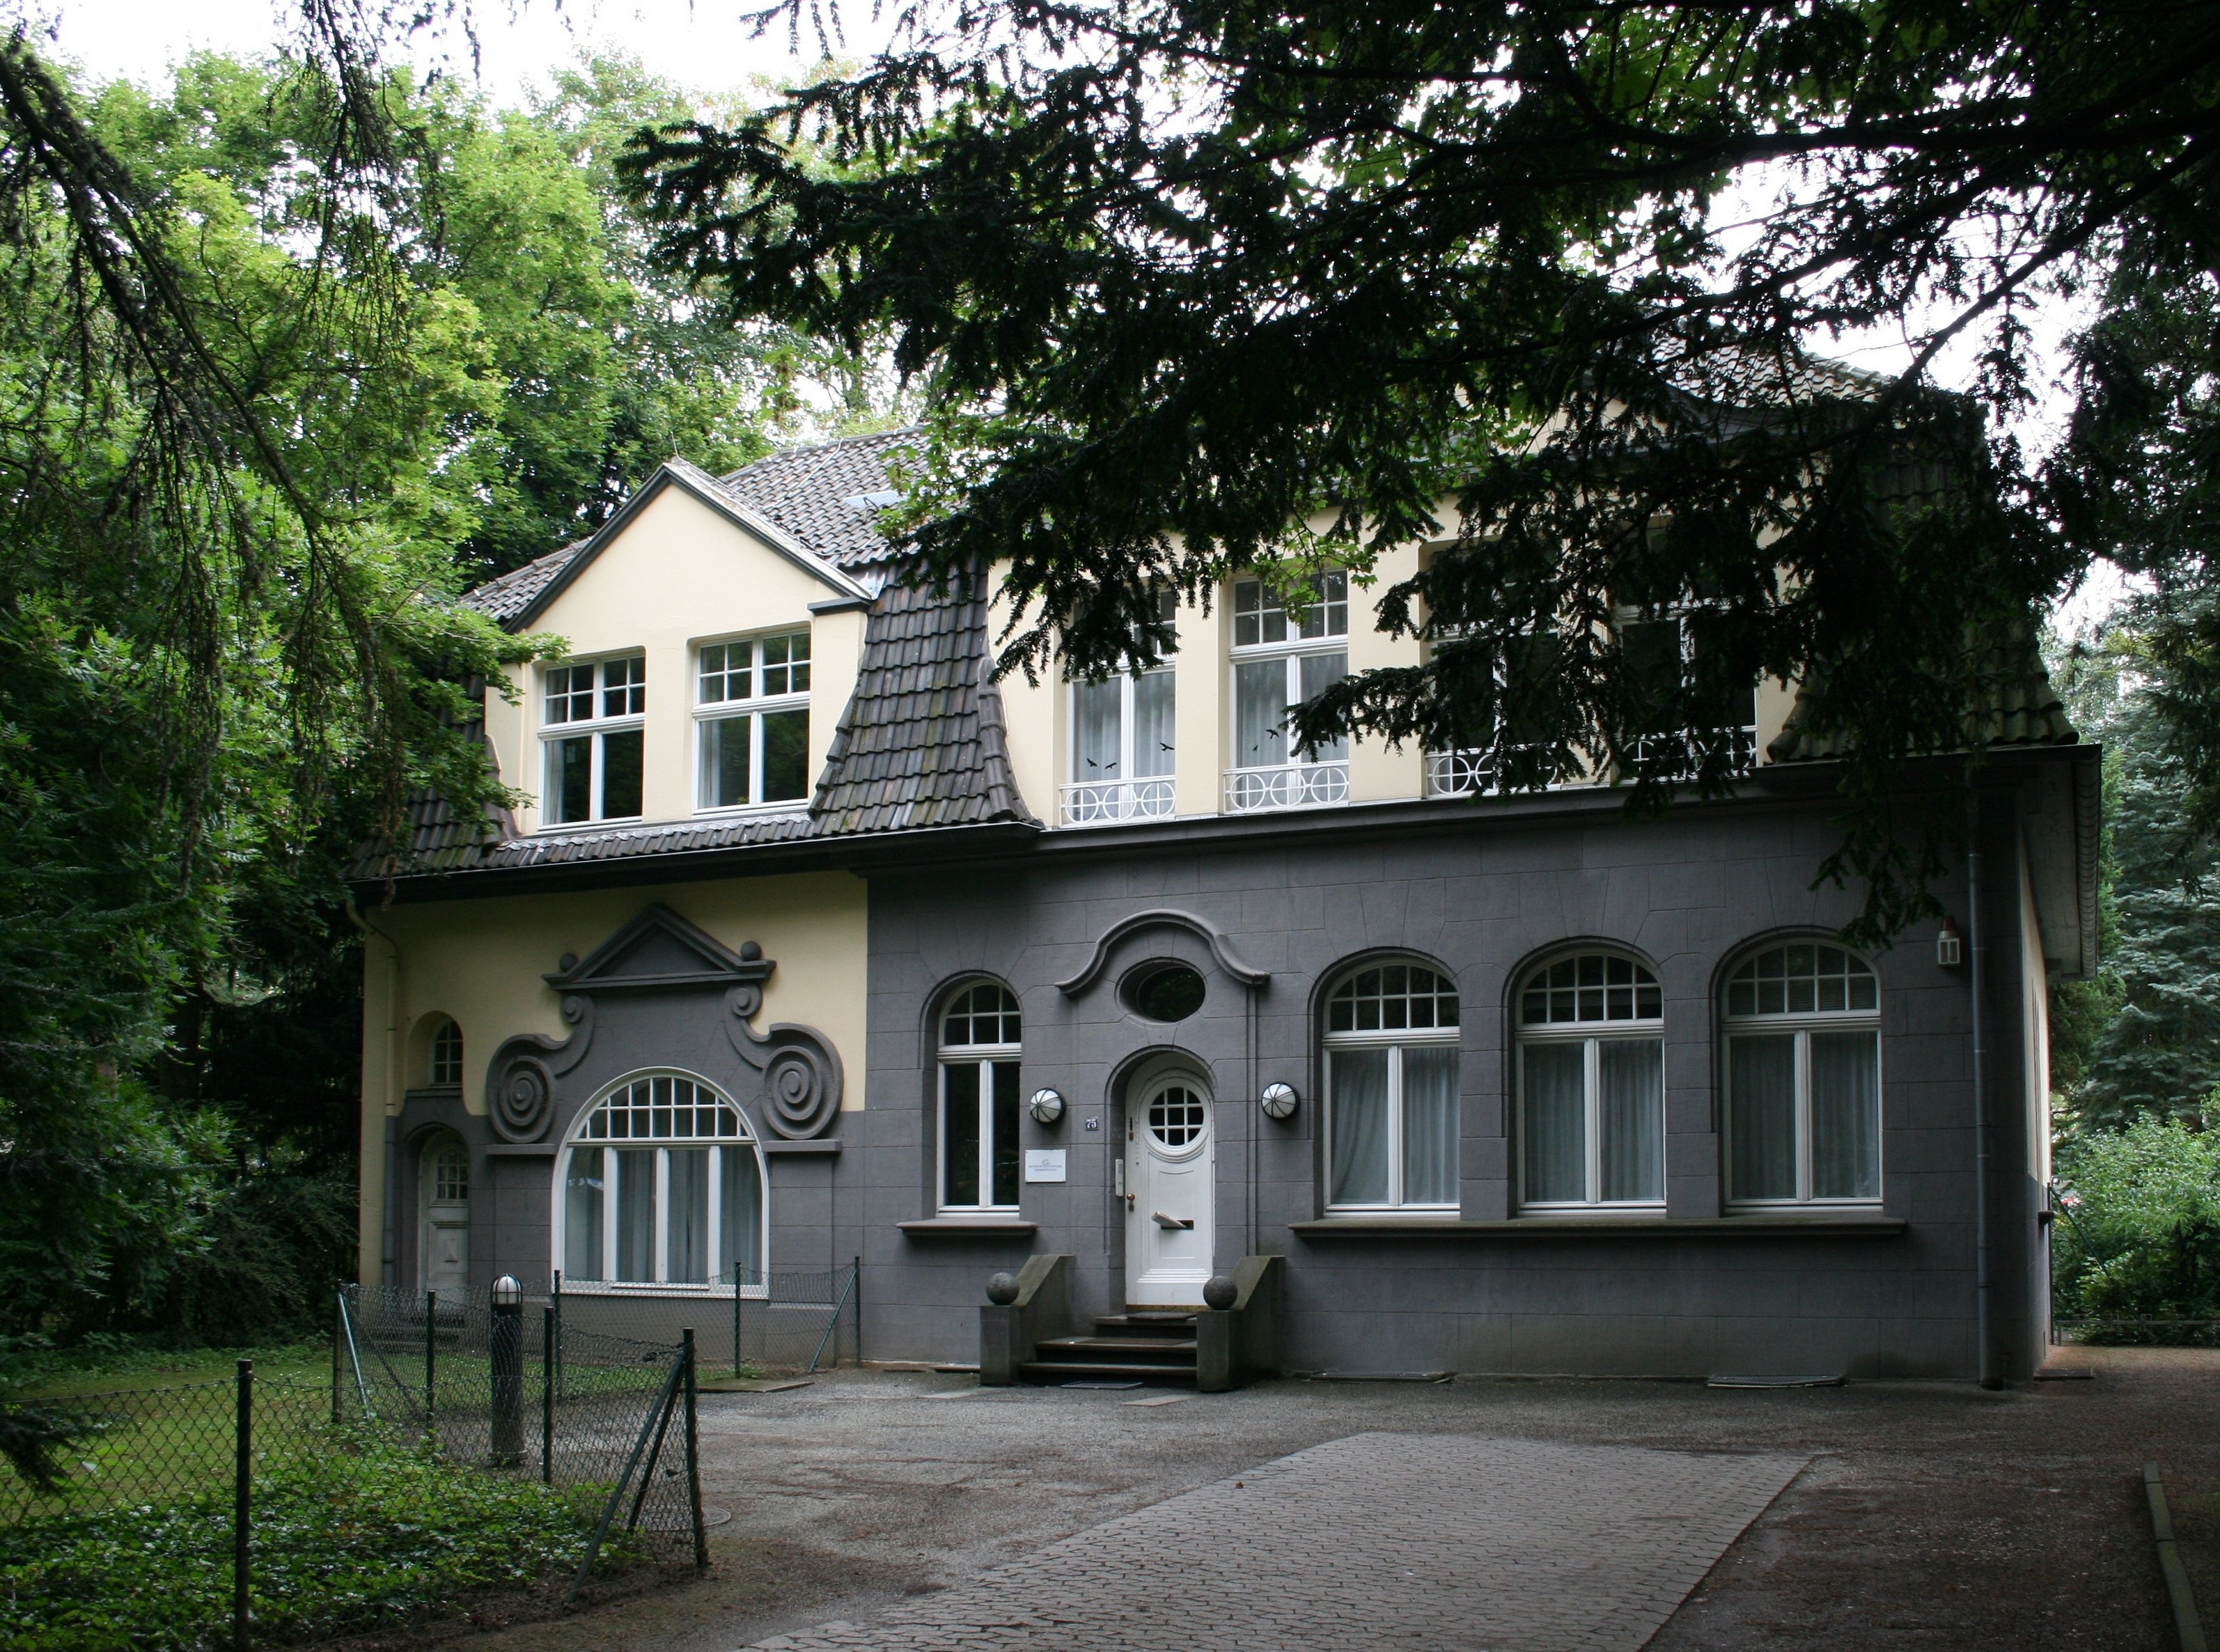 Kleines Theater Bad Godesberg Kleines Theater Bad Bentheim